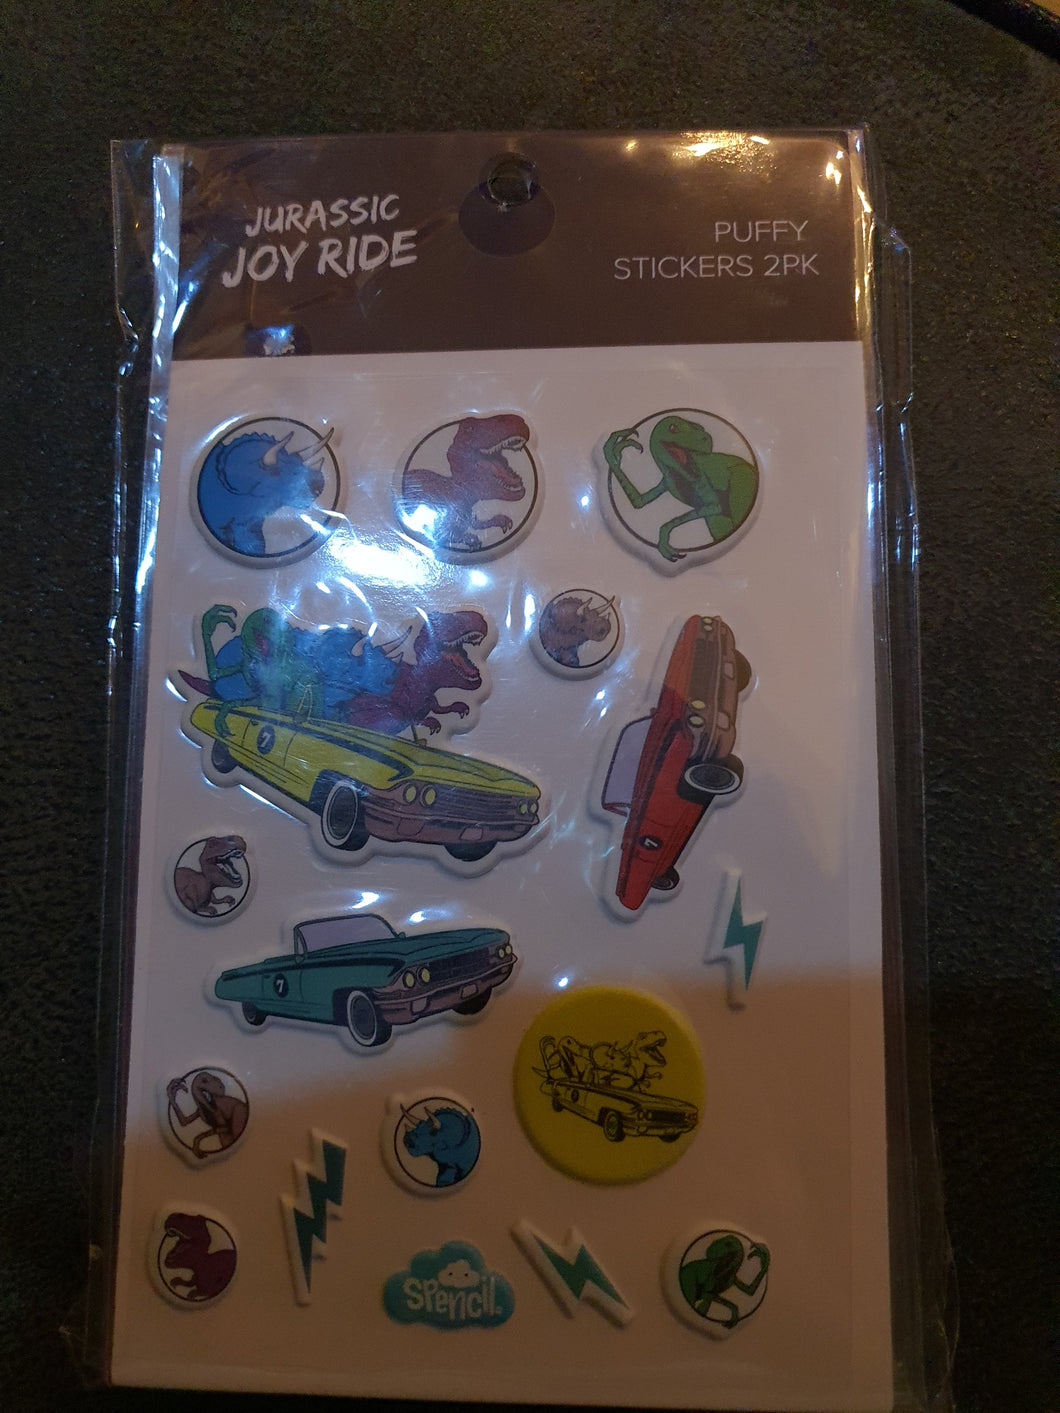 Spencil Jurassic Joy Ride Puffy Stickers 2pk